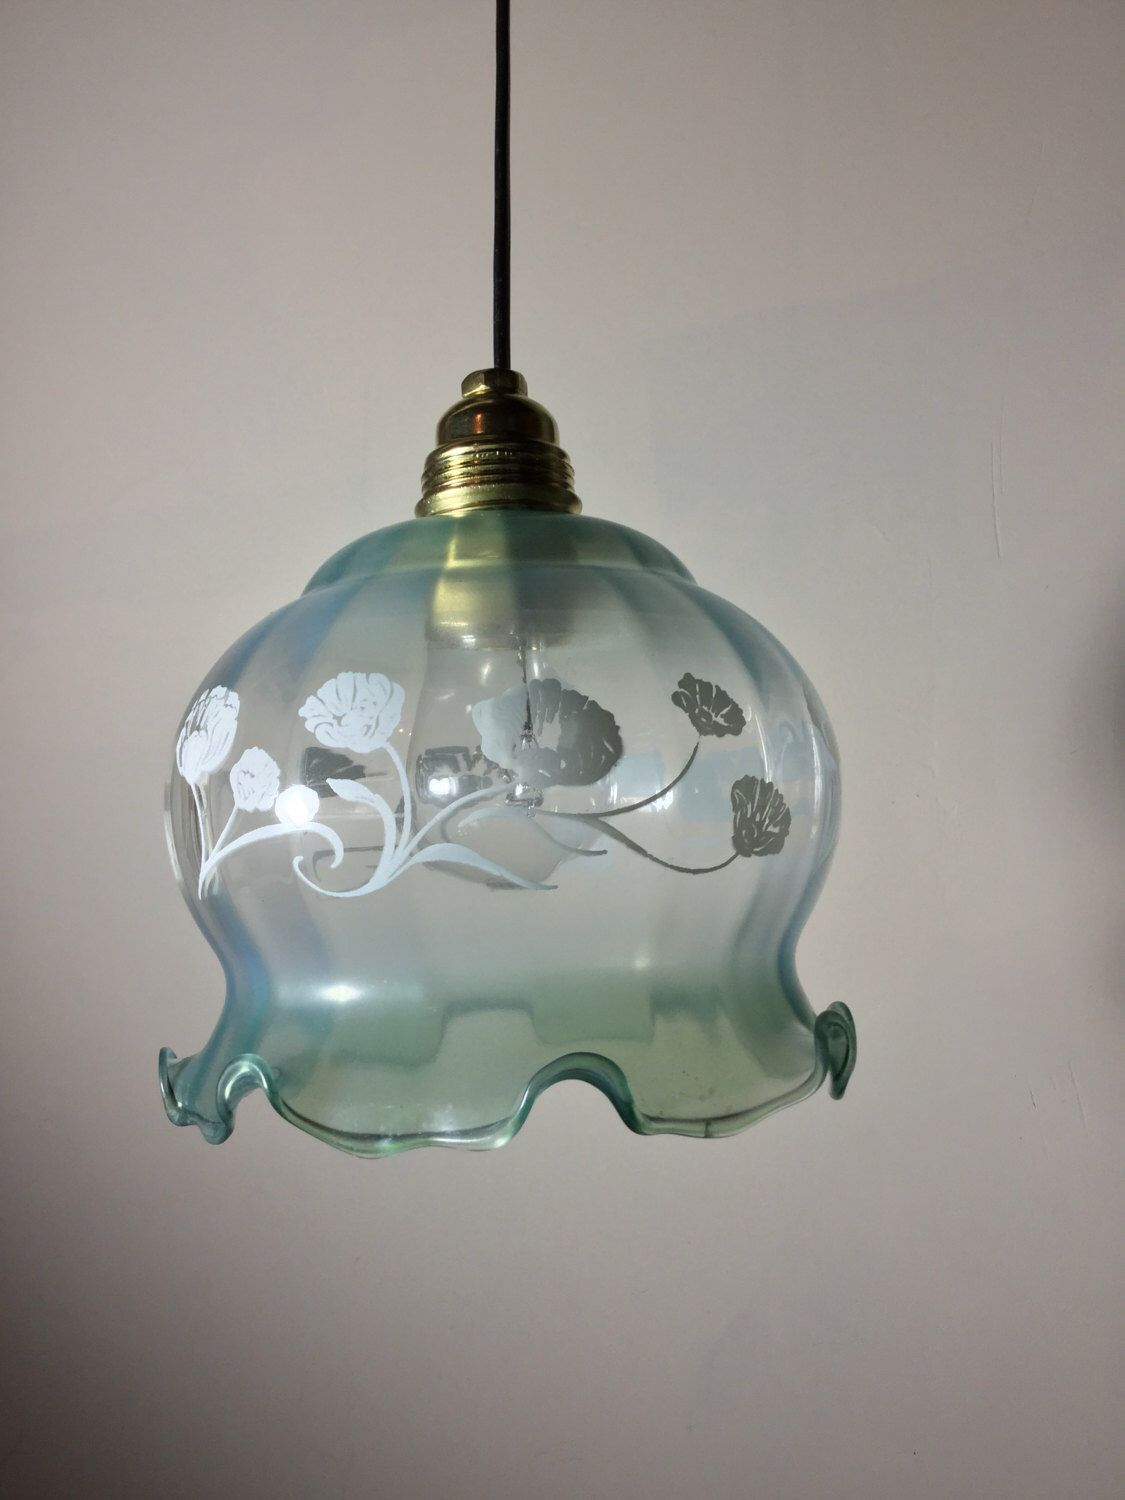 Pretty Vintage French Frilly Glass Lampshade - Matt Frosted Opaque Glass with Subtle Blue Green Shading & Floral White Design. by BeauChateauBoutique on Etsy https://www.etsy.com/listing/511550051/pretty-vintage-french-frilly-glass